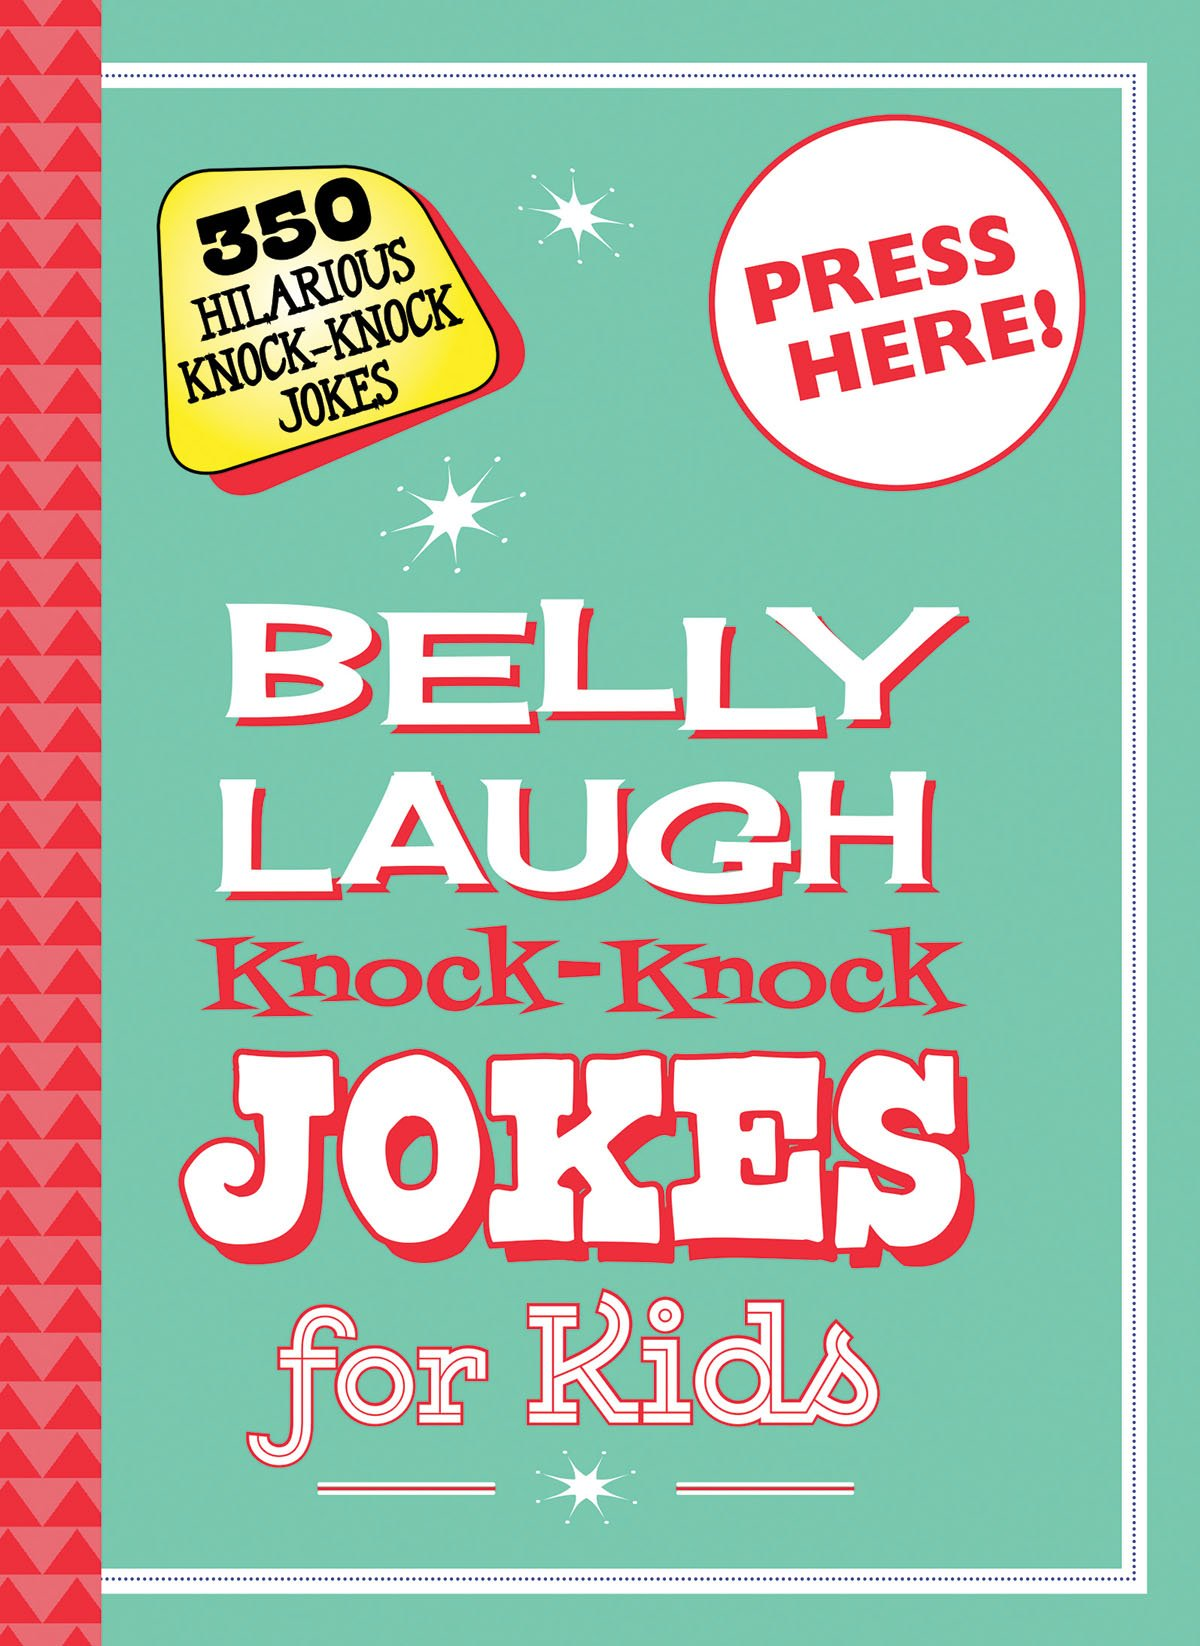 Belly Laugh Knock Knock Jokes For Kids 350 Hilarious Knock